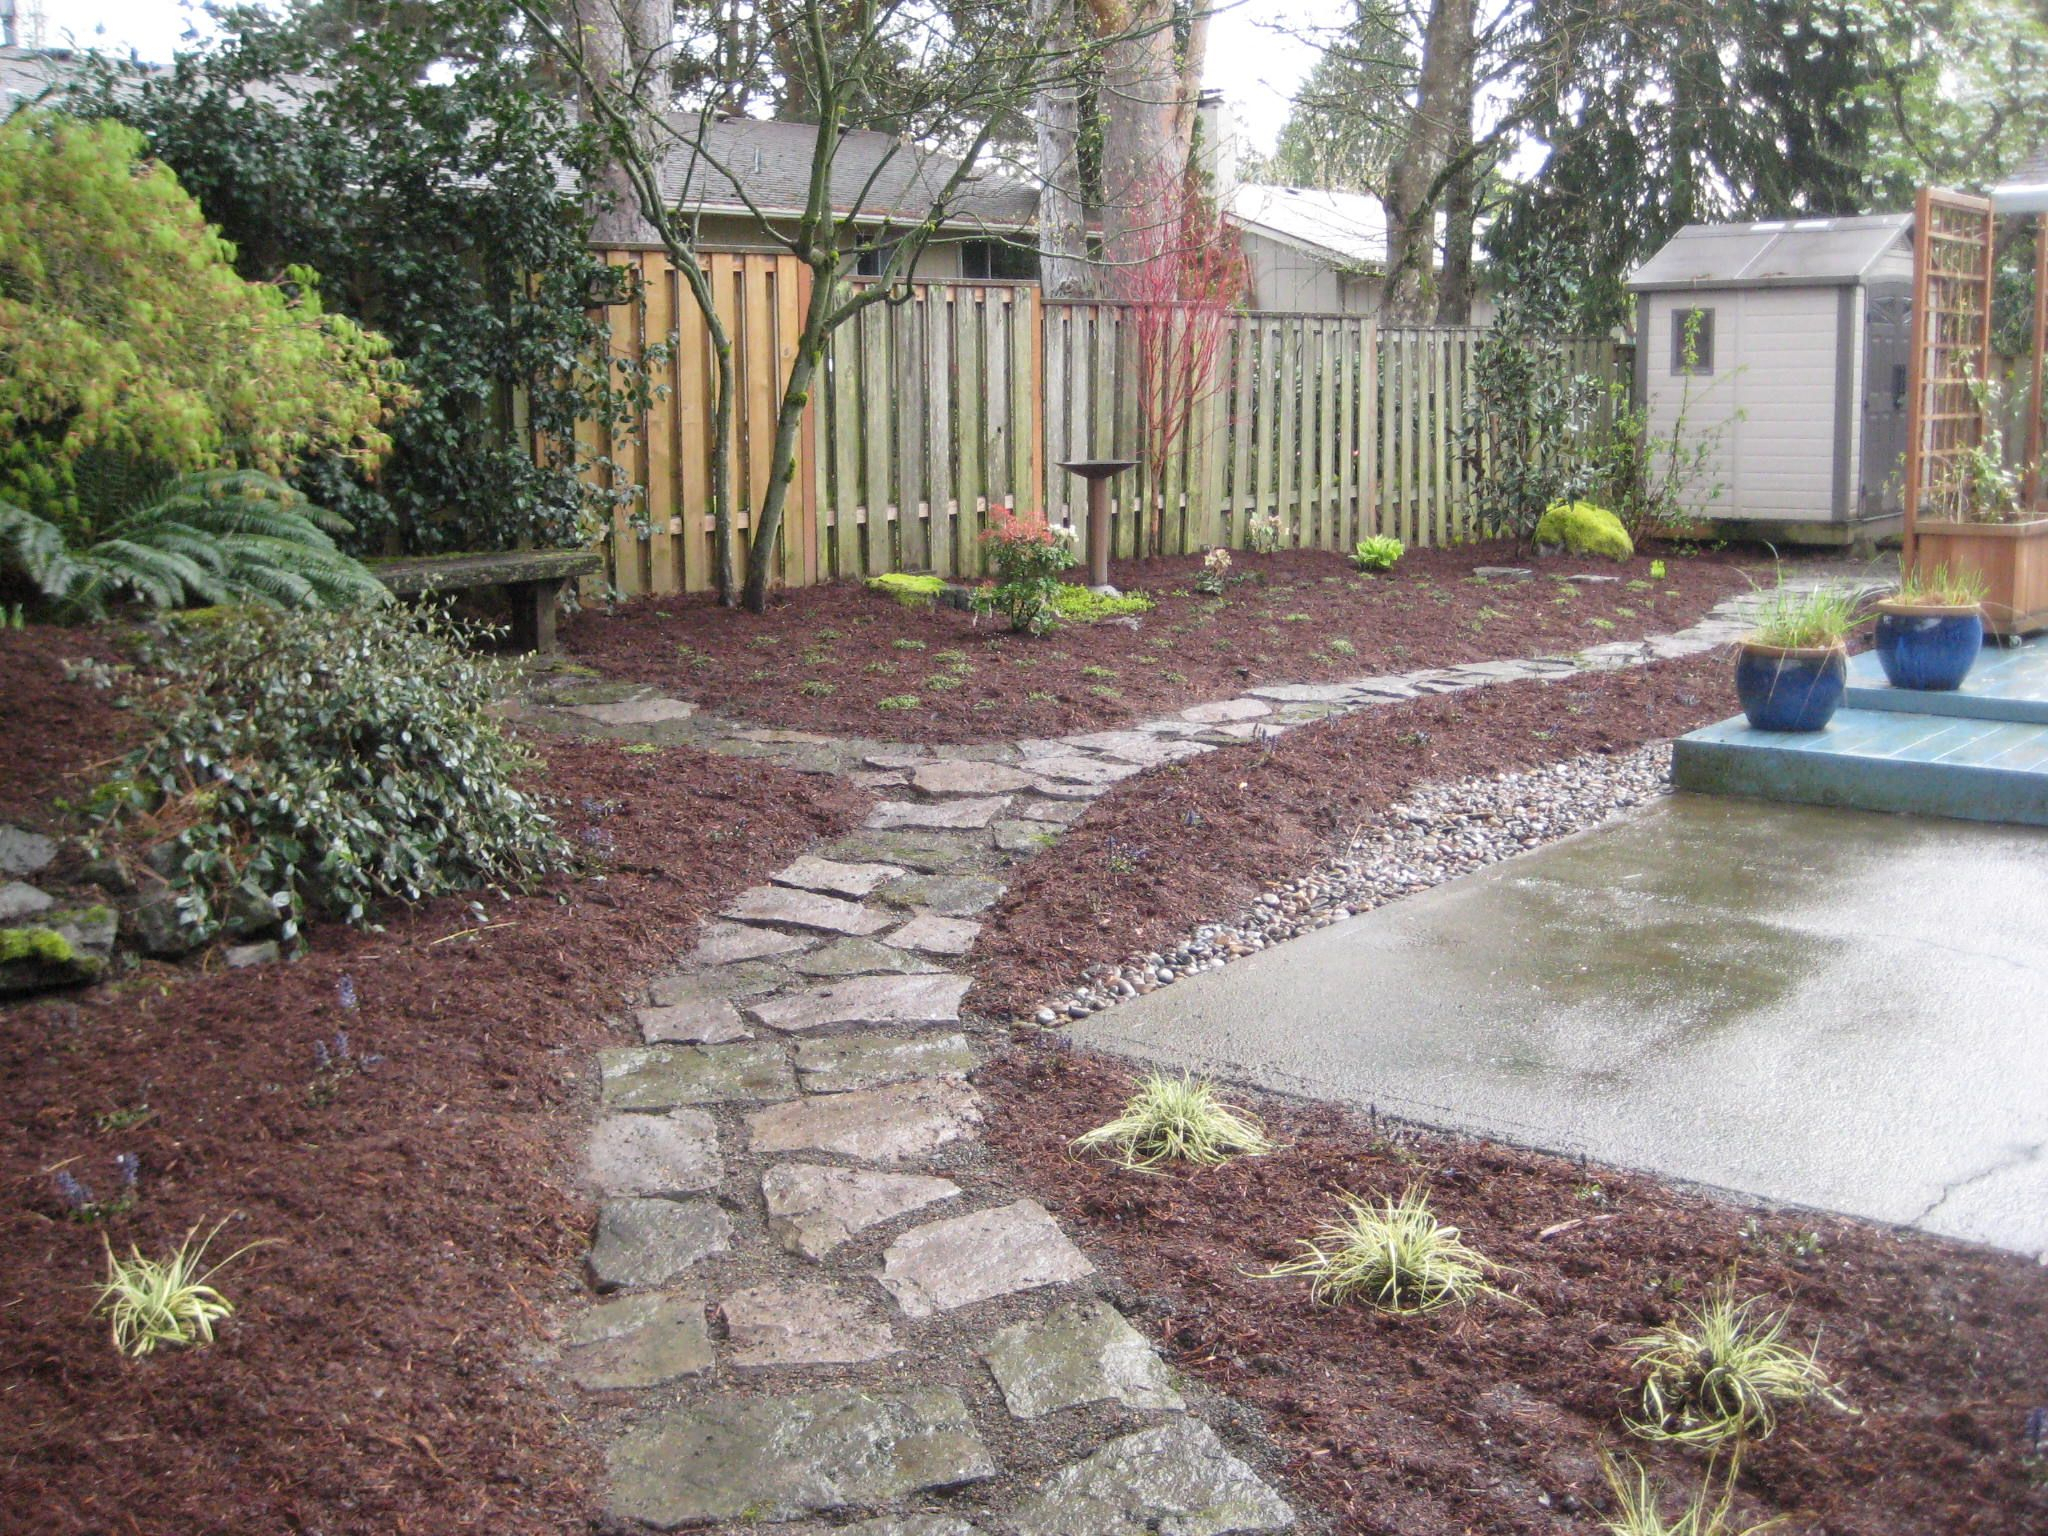 Small Backyard No Grass Backyard Ideas Without Grass For Dogs throughout 11 Awesome Initiatives of How to Improve Small Backyard Ideas No Grass